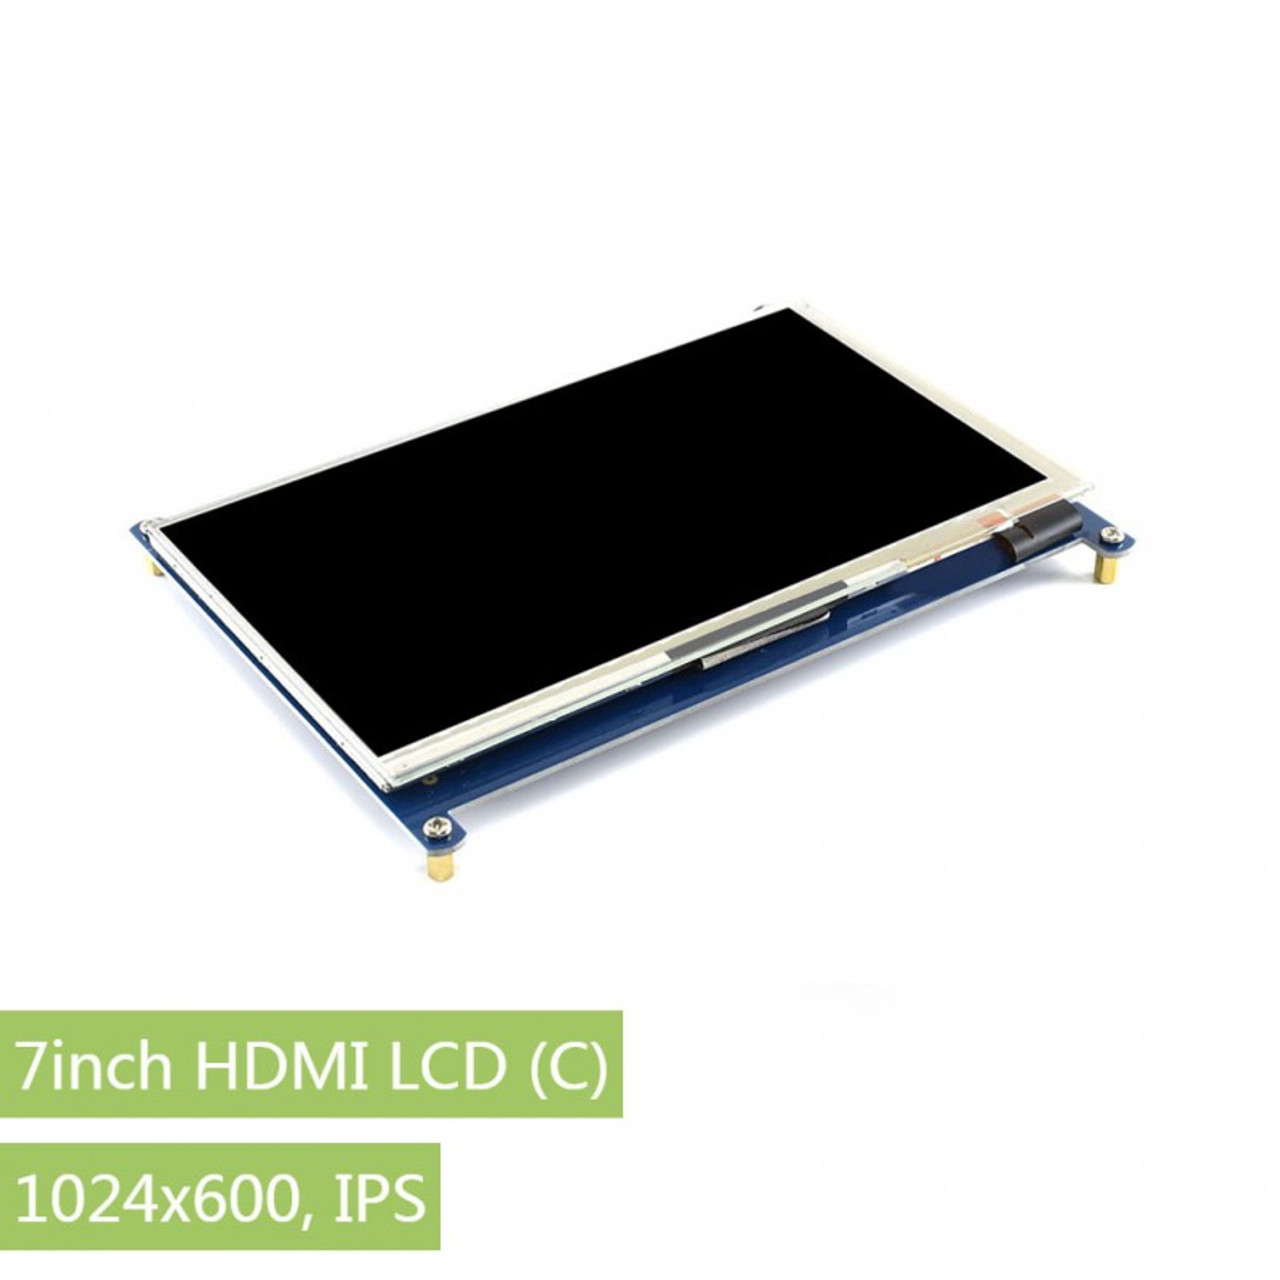 7inch HDMI LCD (C), 1024×600, IPS